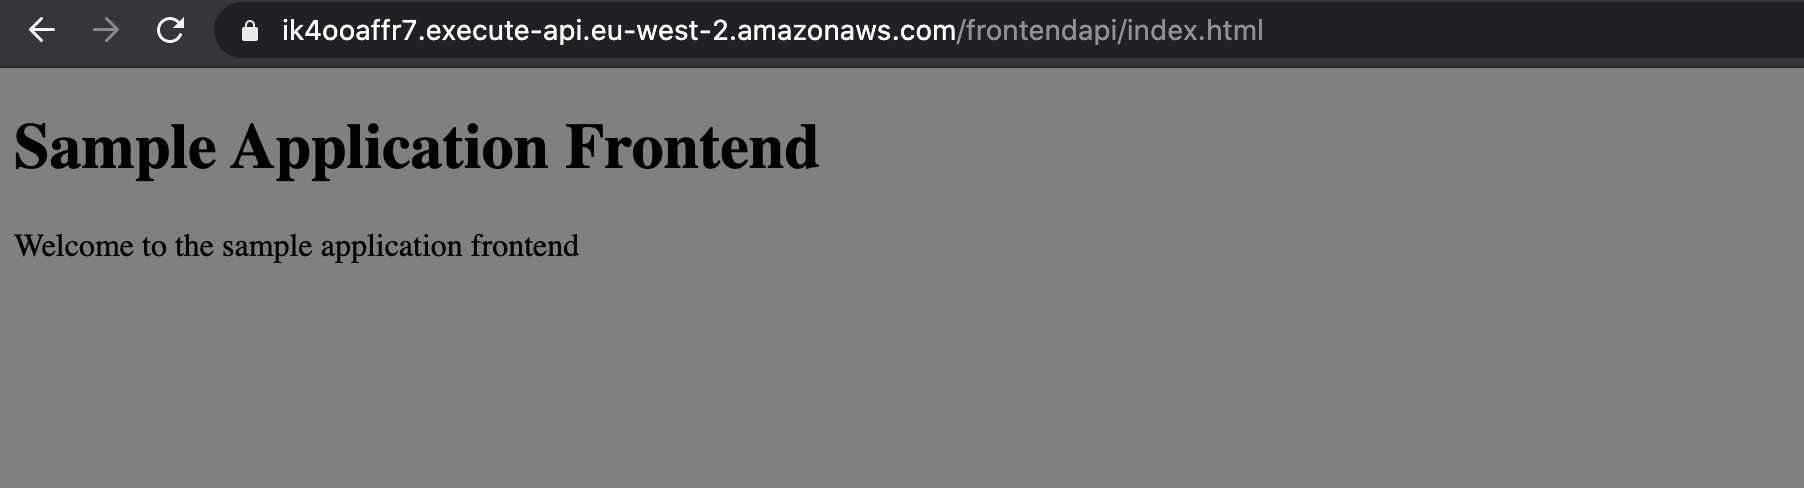 front-end-application